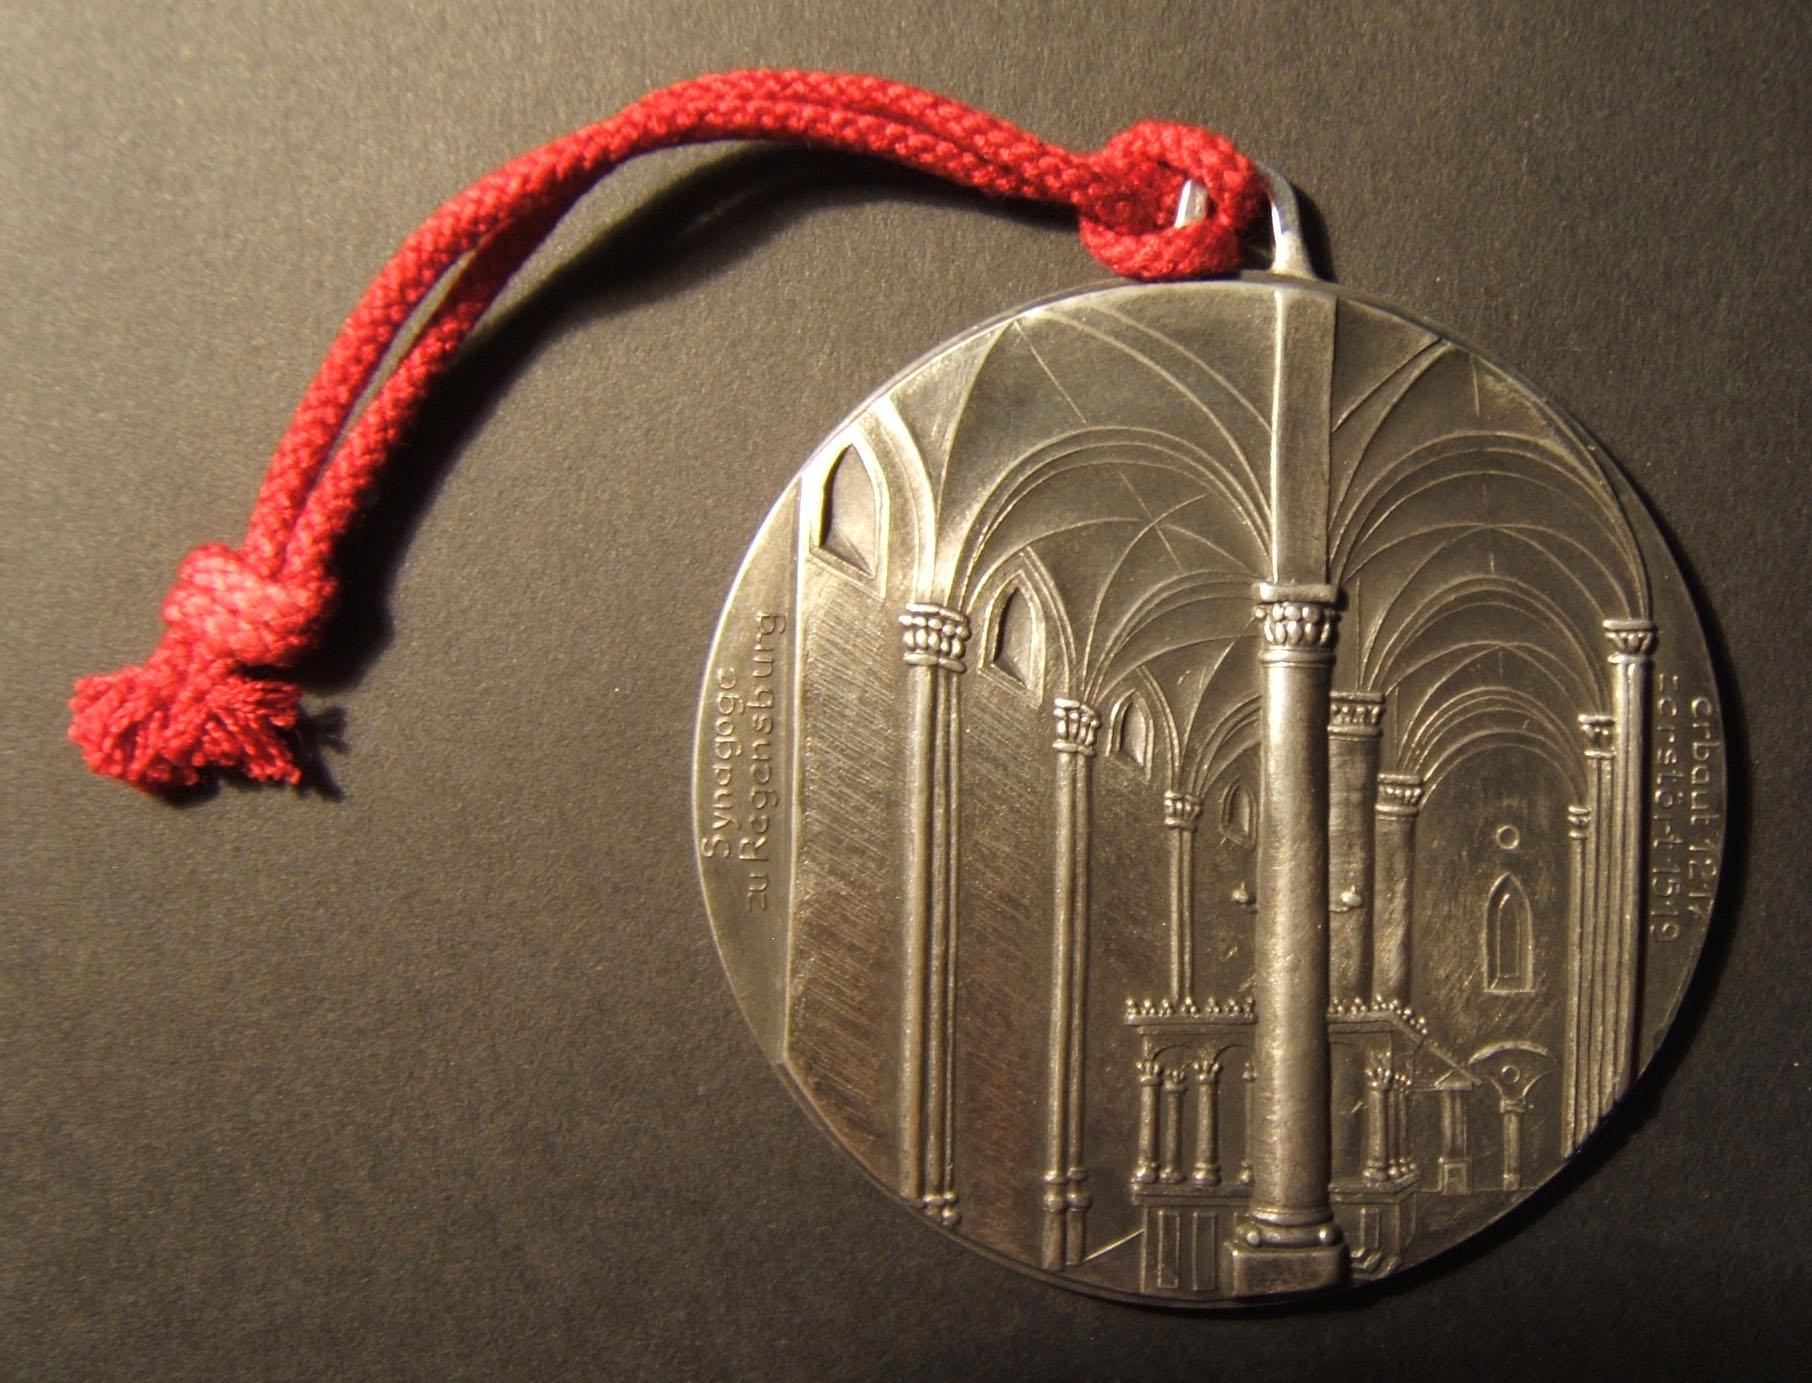 Germany: Regensburg Synagogue commemorative medal, ND (circa. 1967-1969)